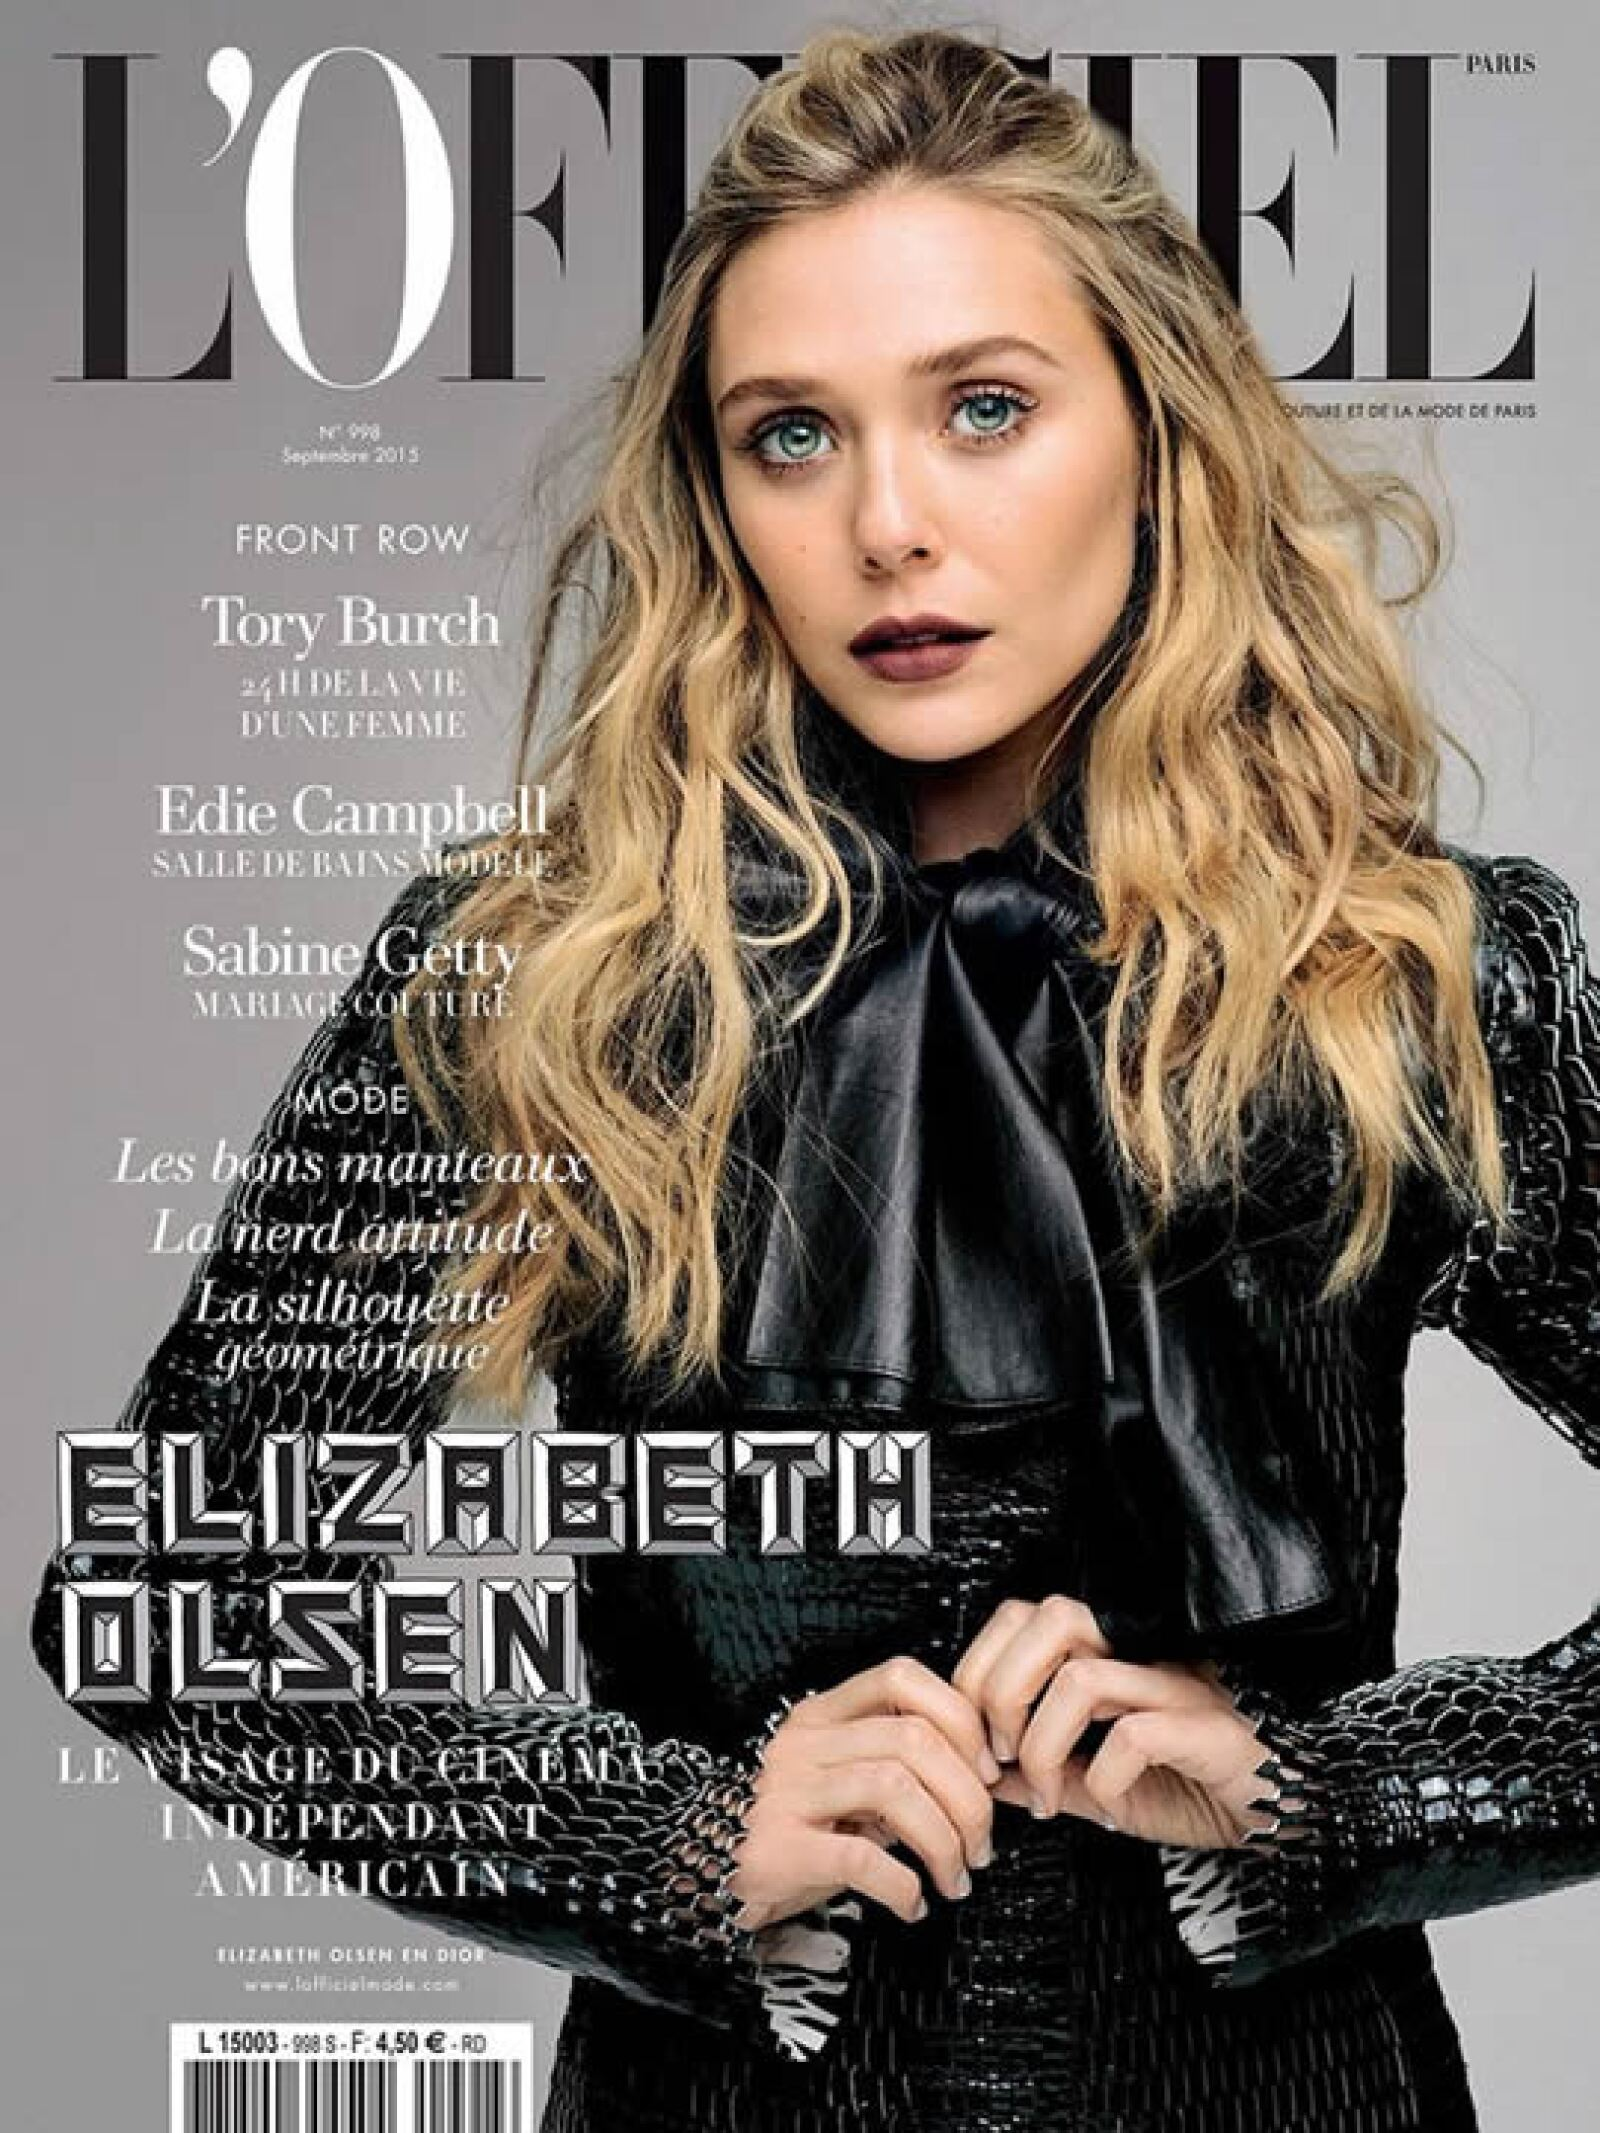 L`Officiel Paris: Elizabeth Olsen aparece de impacto con un look total de Dior fall 2015.